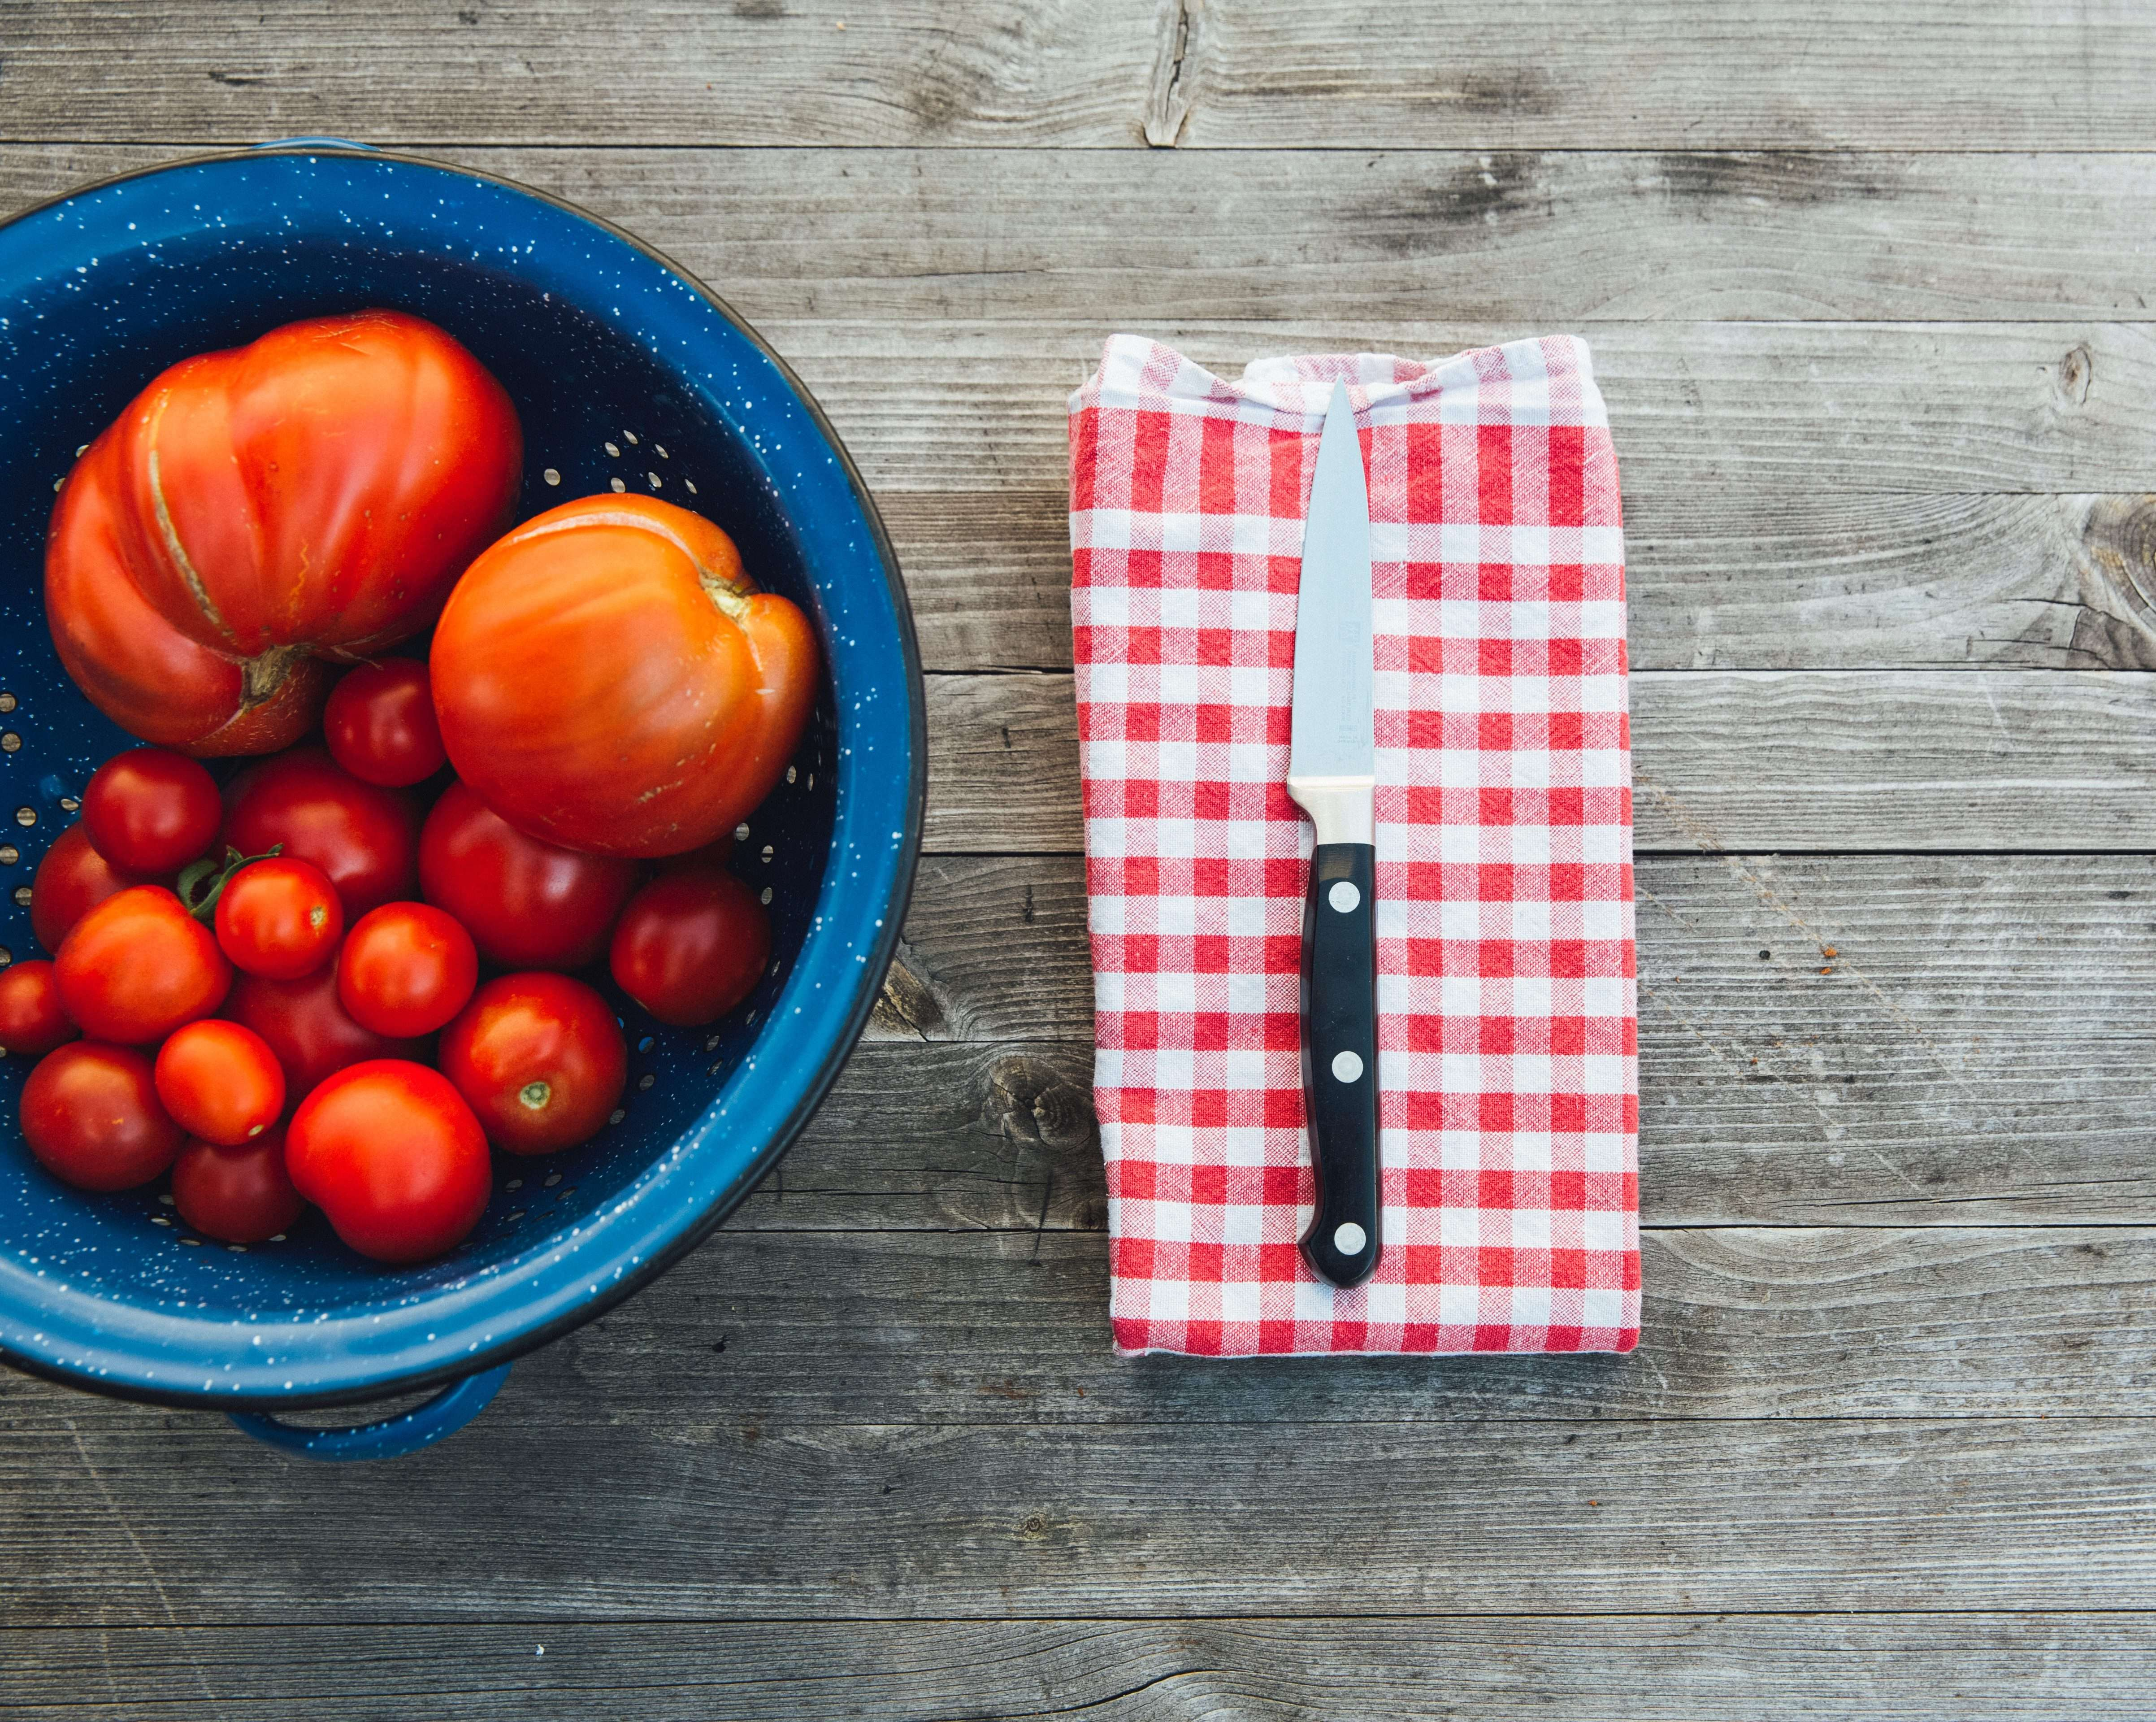 Tomato Salad An Easy French Recipe for Summer with a twist ...